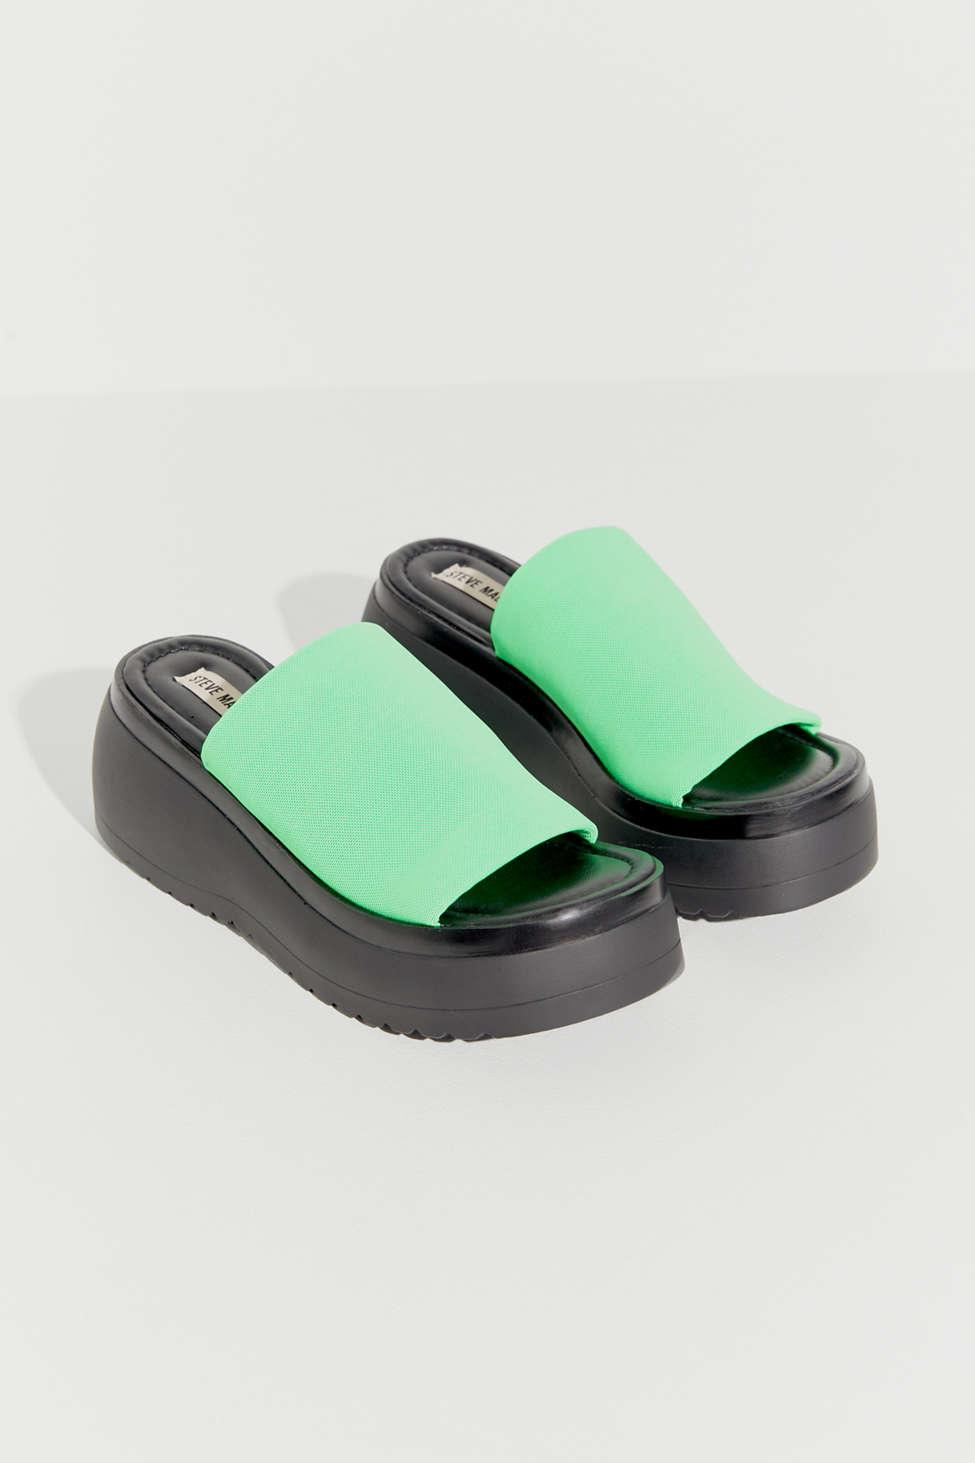 04fa71a6ee5f Steve Madden - Green Uo Exclusive Slinky Platform Sandal - Lyst. View  fullscreen